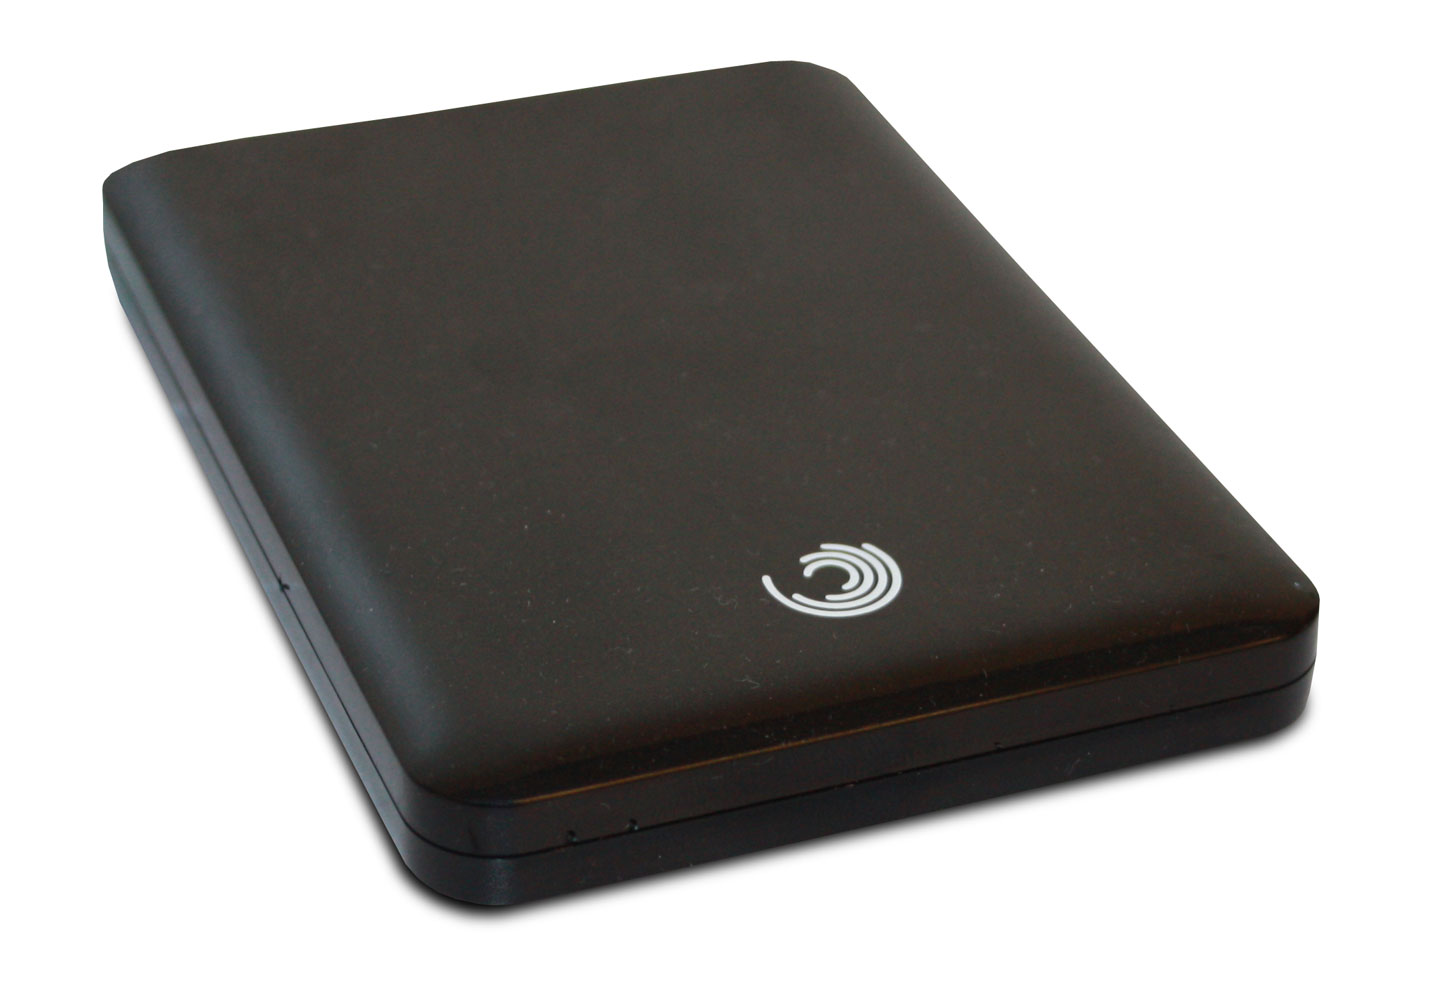 seagate freeagent externe 2 5 zoll usb 3 0 500gb s ata hdd. Black Bedroom Furniture Sets. Home Design Ideas